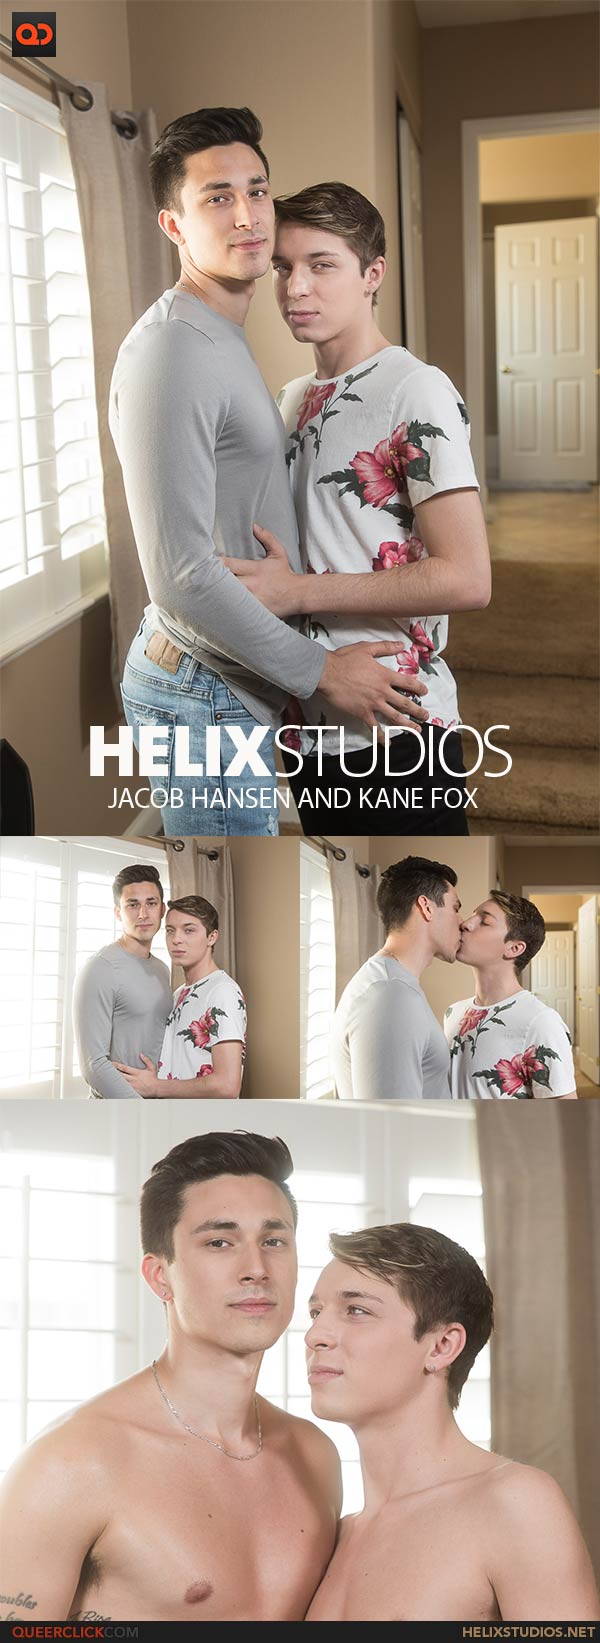 HelixStudios: Jacob Hansen and Kane Fox